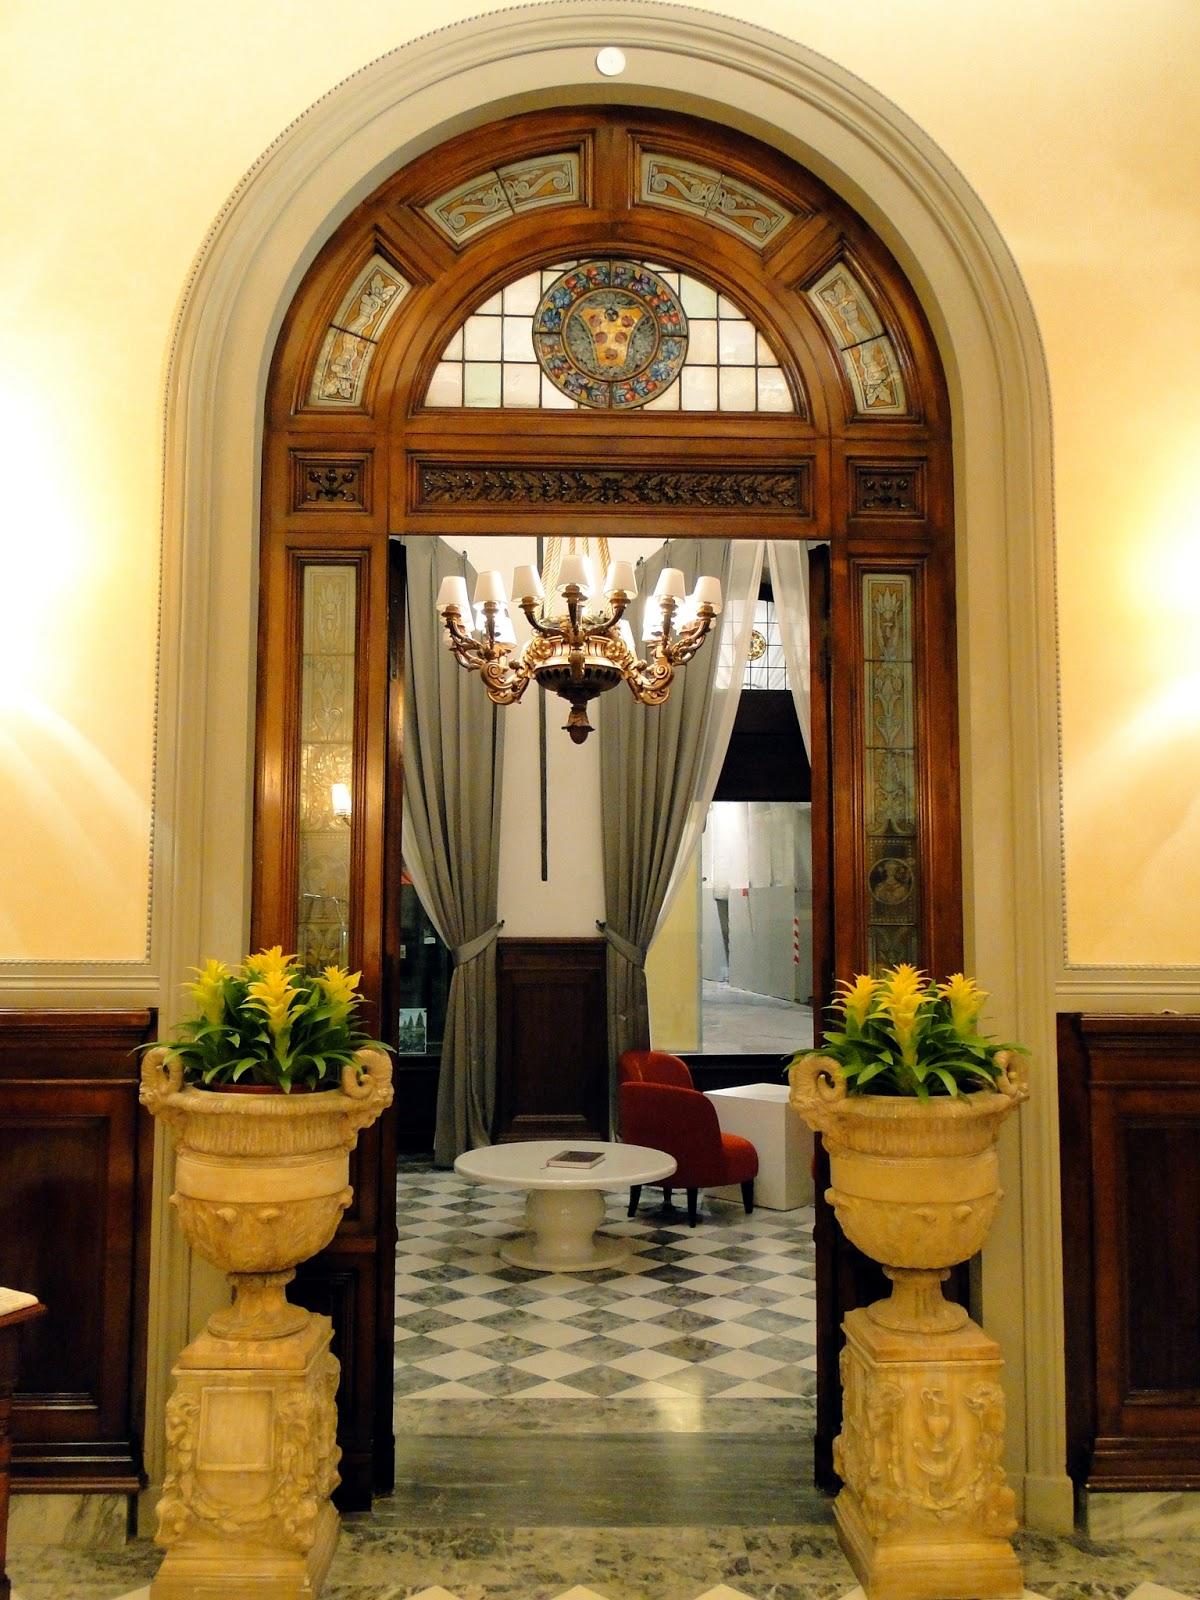 Nh collection firenze porta rossa florence italy a - Porta rossa hotel florence ...